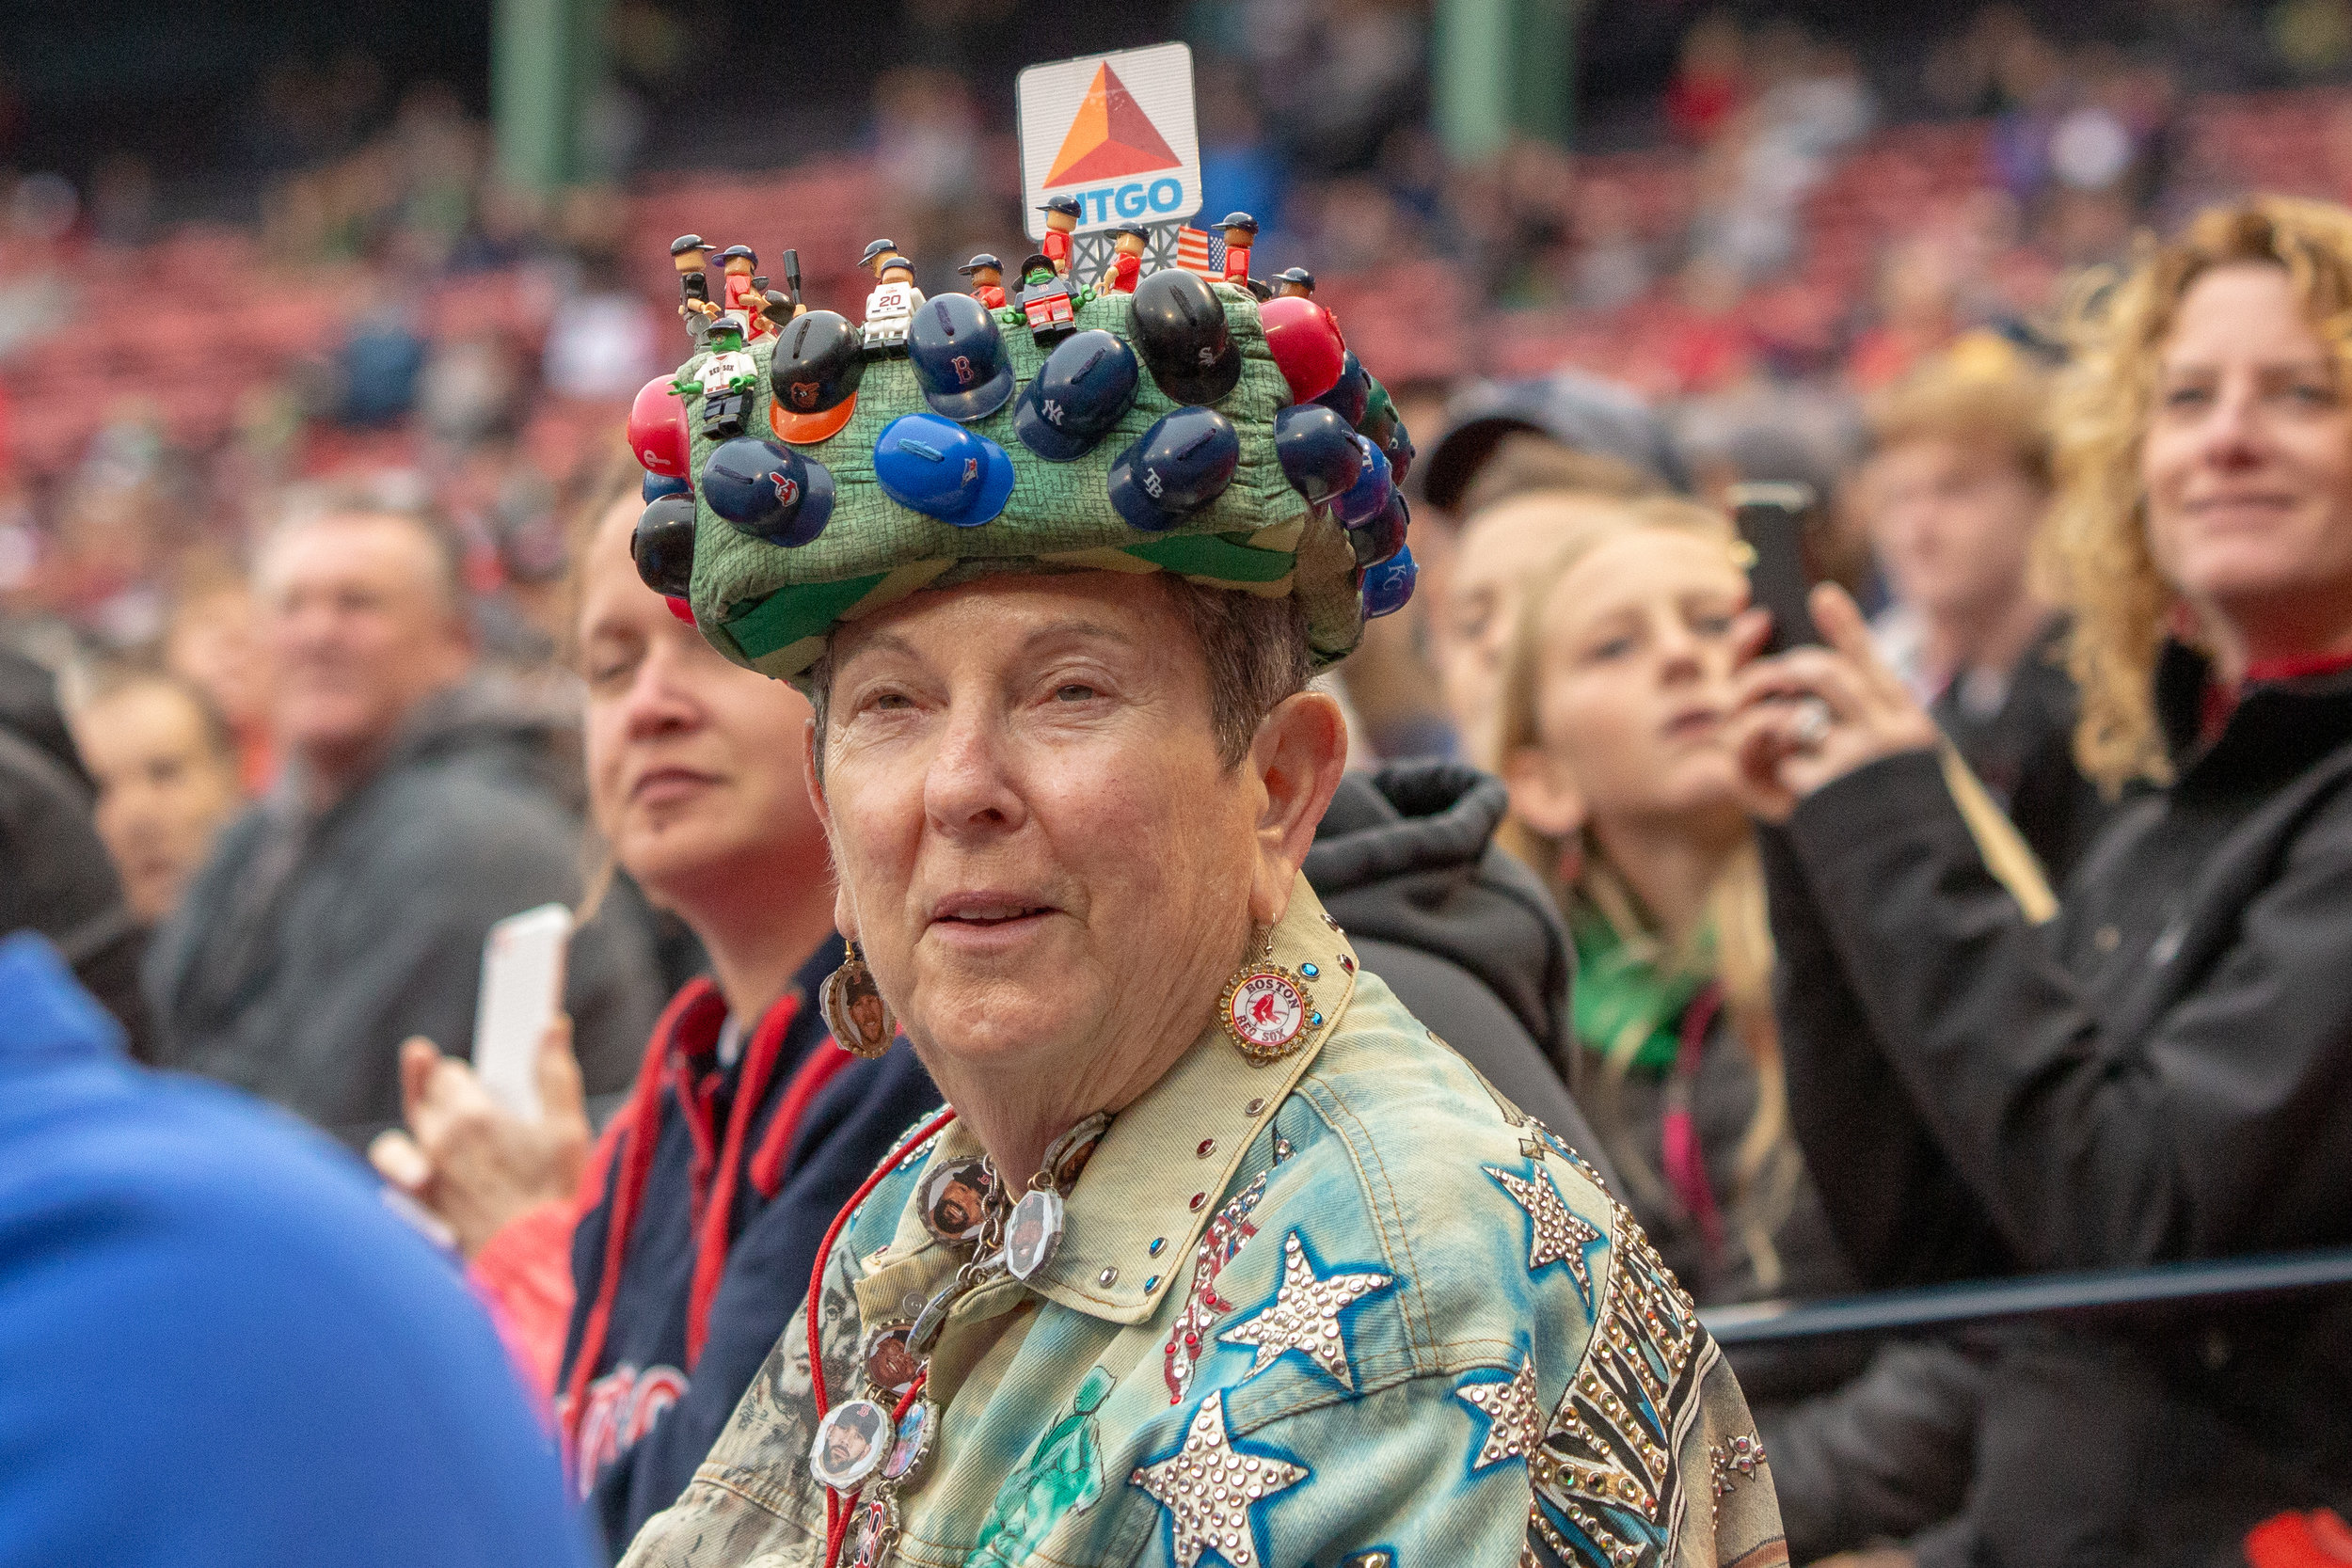 Red Sox super-fan Lynne Smith wears her iconic hat as she watches the 2018 Red Sox Alumni Game. Her hat has a light-up Citgo sign, the game's home team lineup, and a small version of every team's hat.